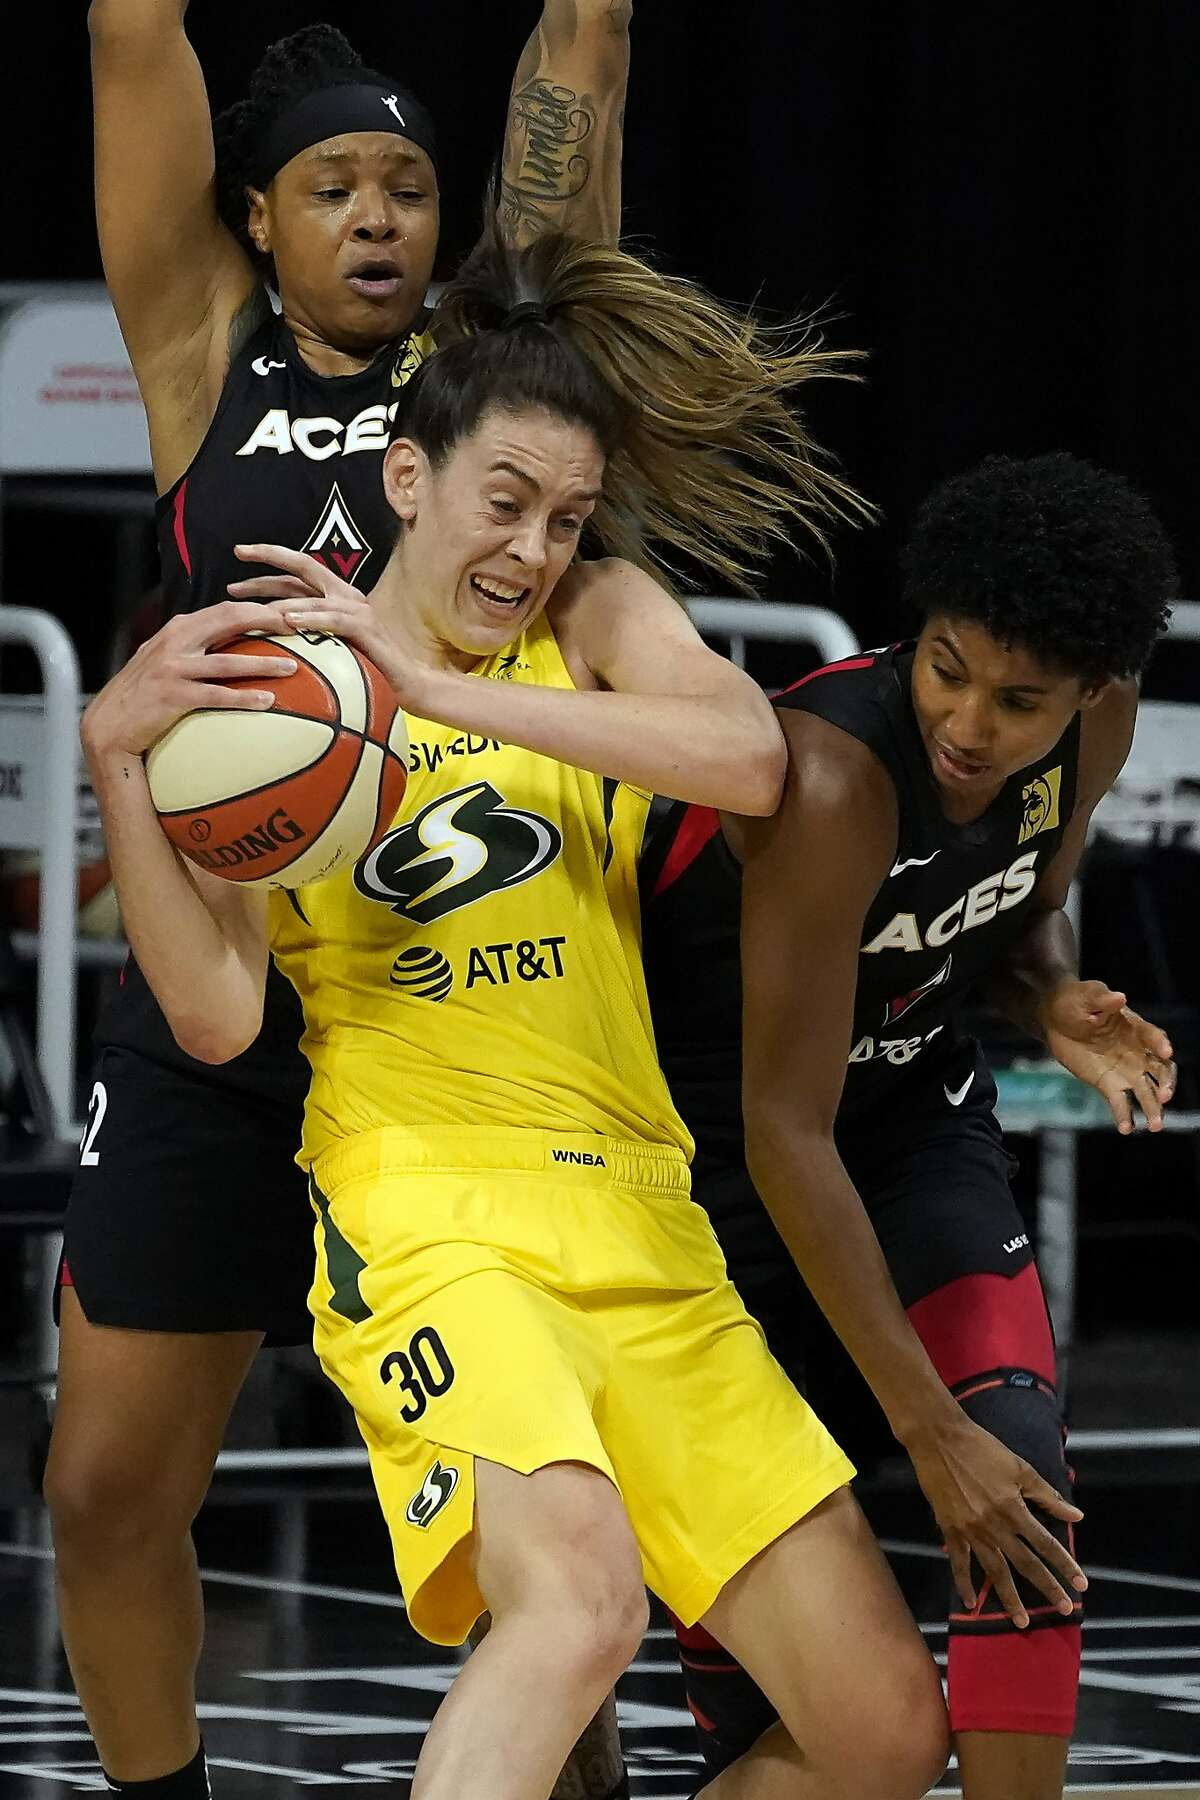 Seattle's Breanna Stewart had 37 points and 15 rebounds.